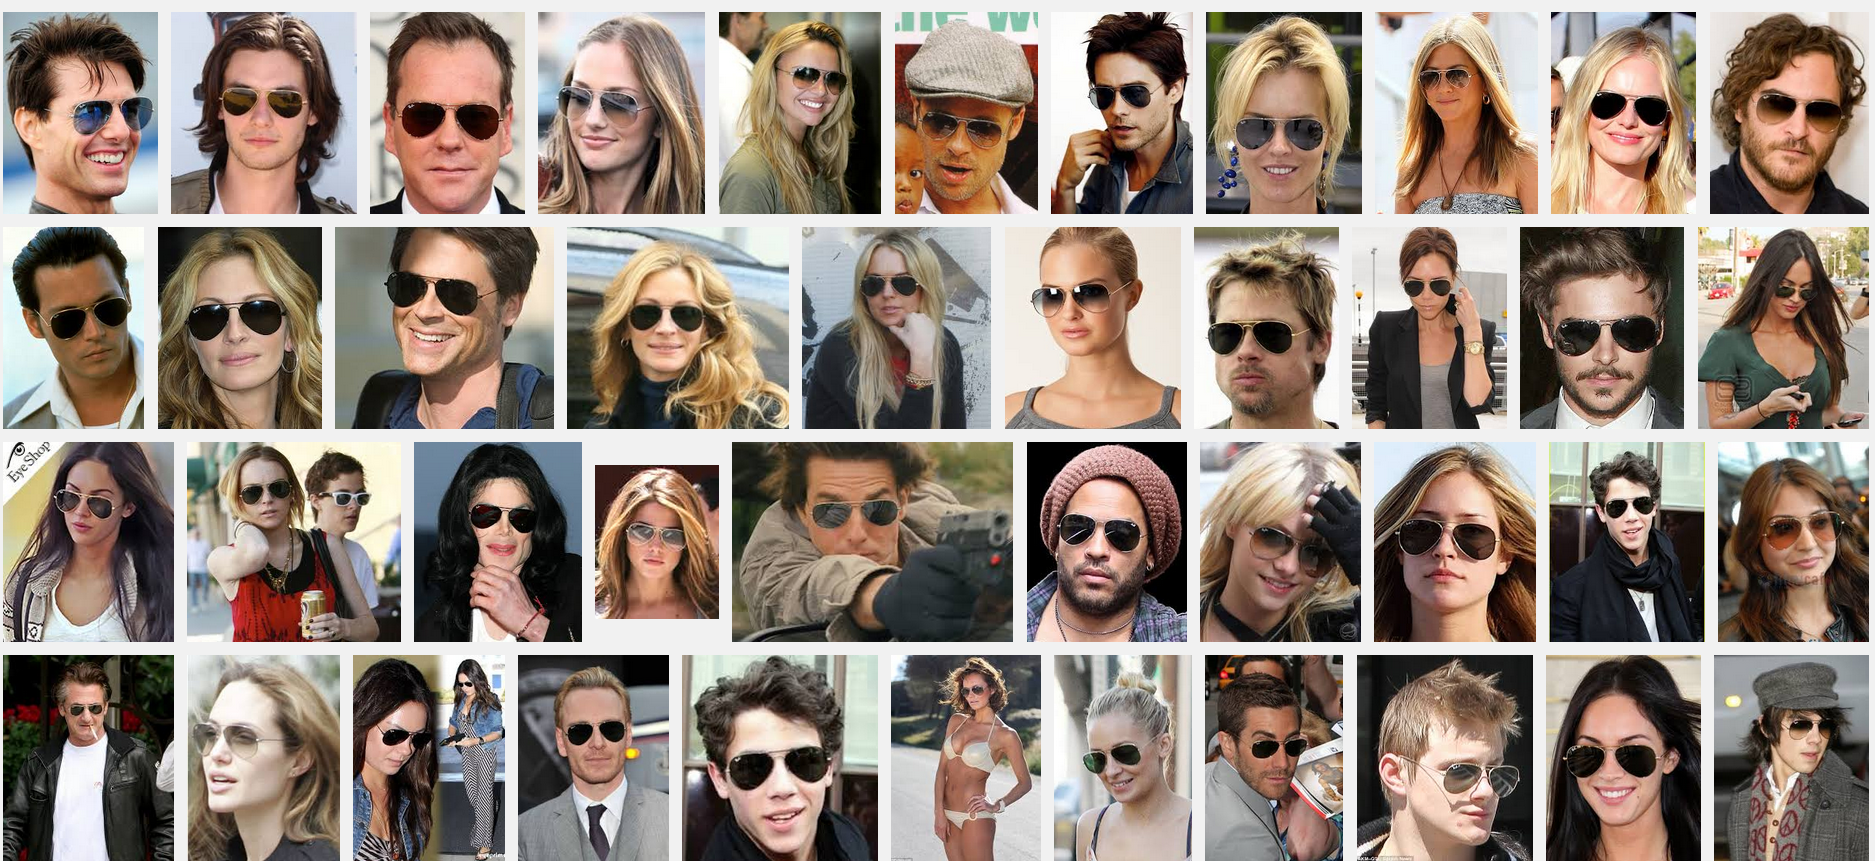 ray-ban aviators celebrities